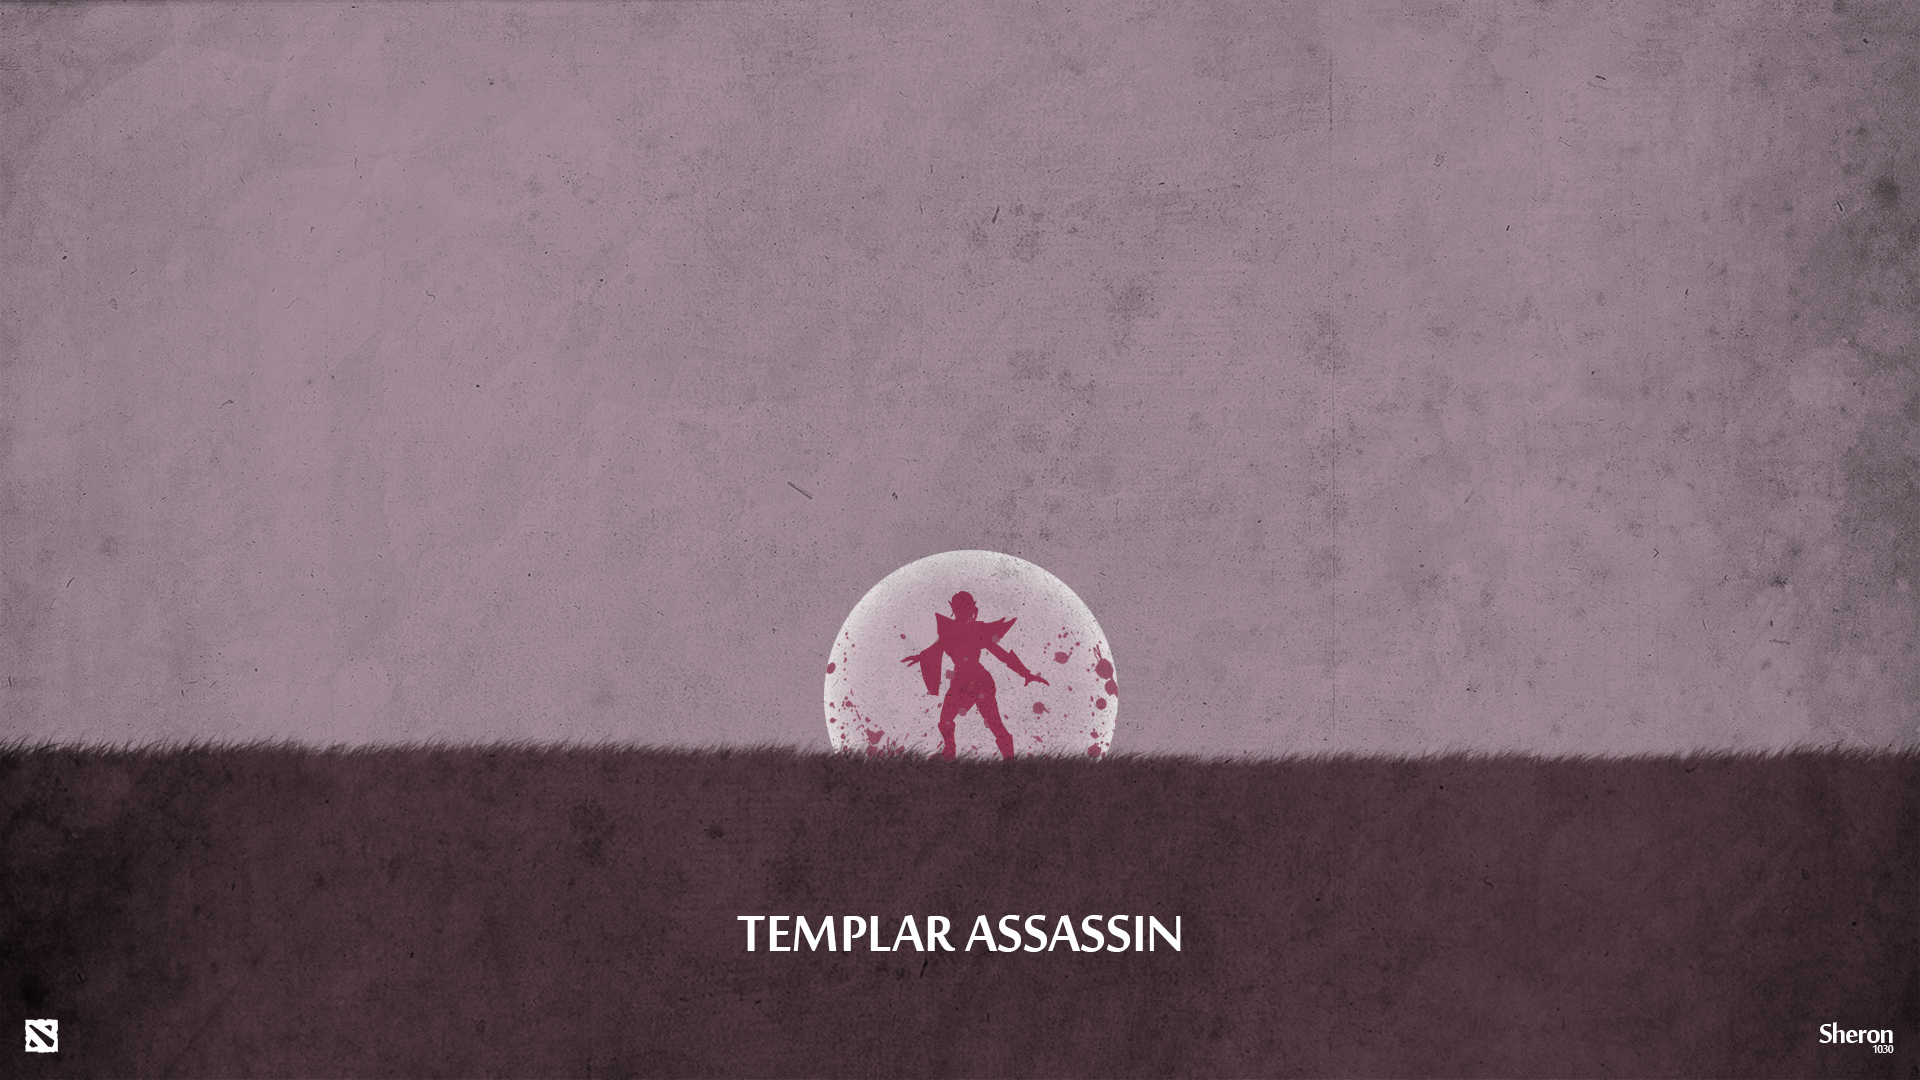 Dota 2 - Templar Assassin Wallpaper by sheron1030